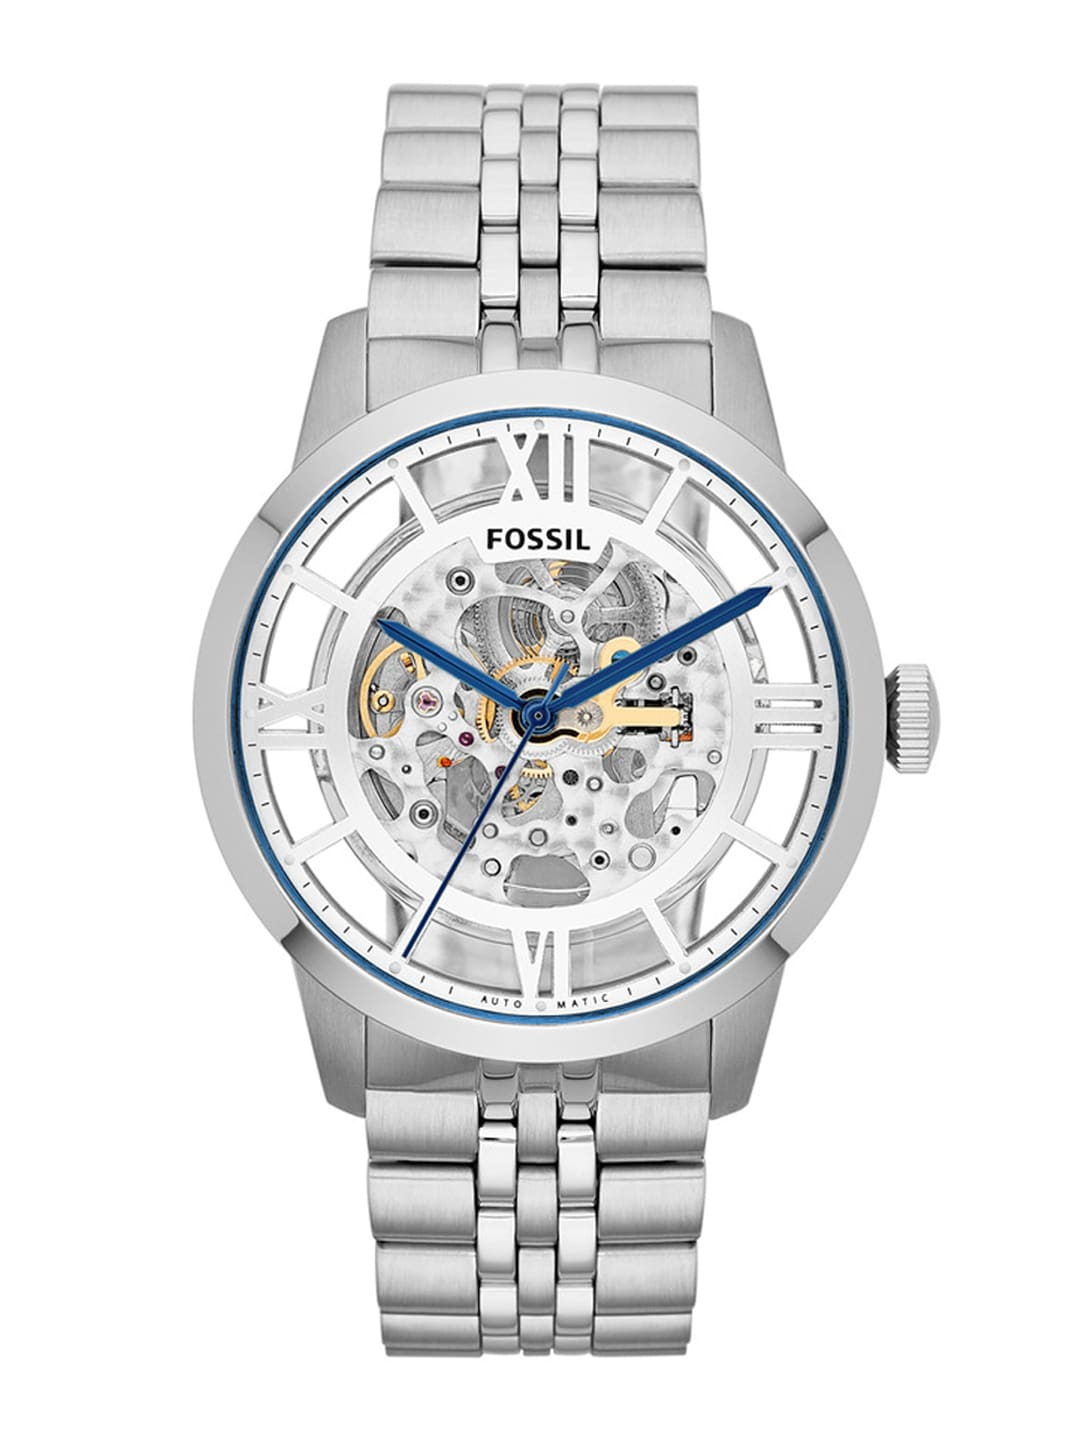 Fossil Men Silver-Toned & Silver-Toned Analogue Watch image